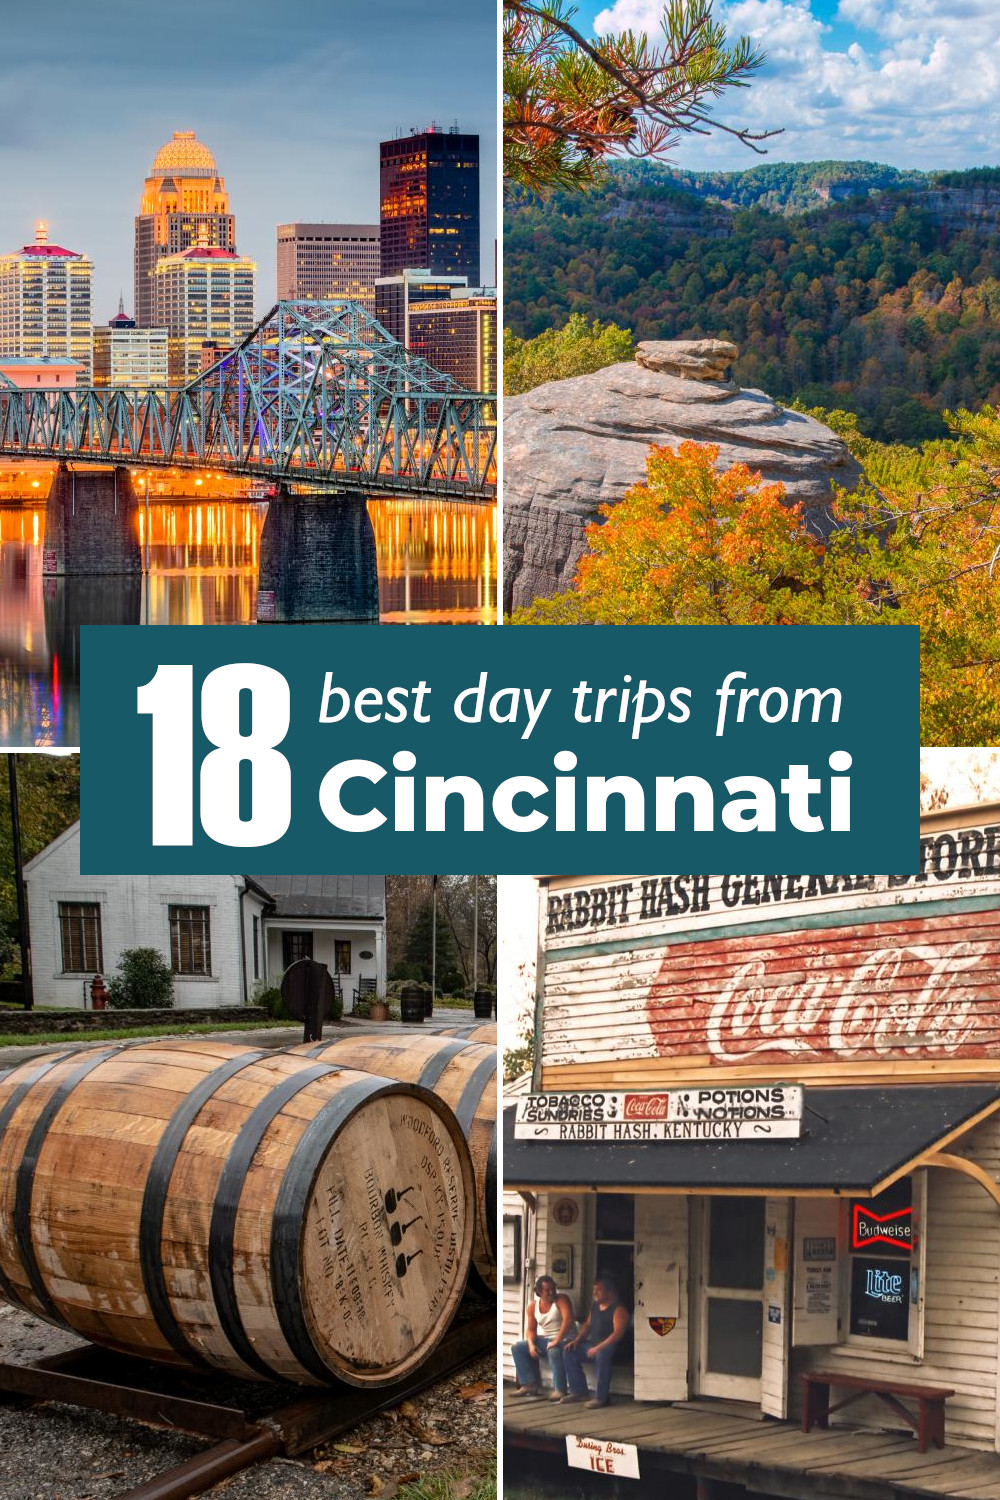 18 best day trips from Cincinnati - from amazing city breaks to State Parks, caverns, bourbon distilleries and quirky towns.